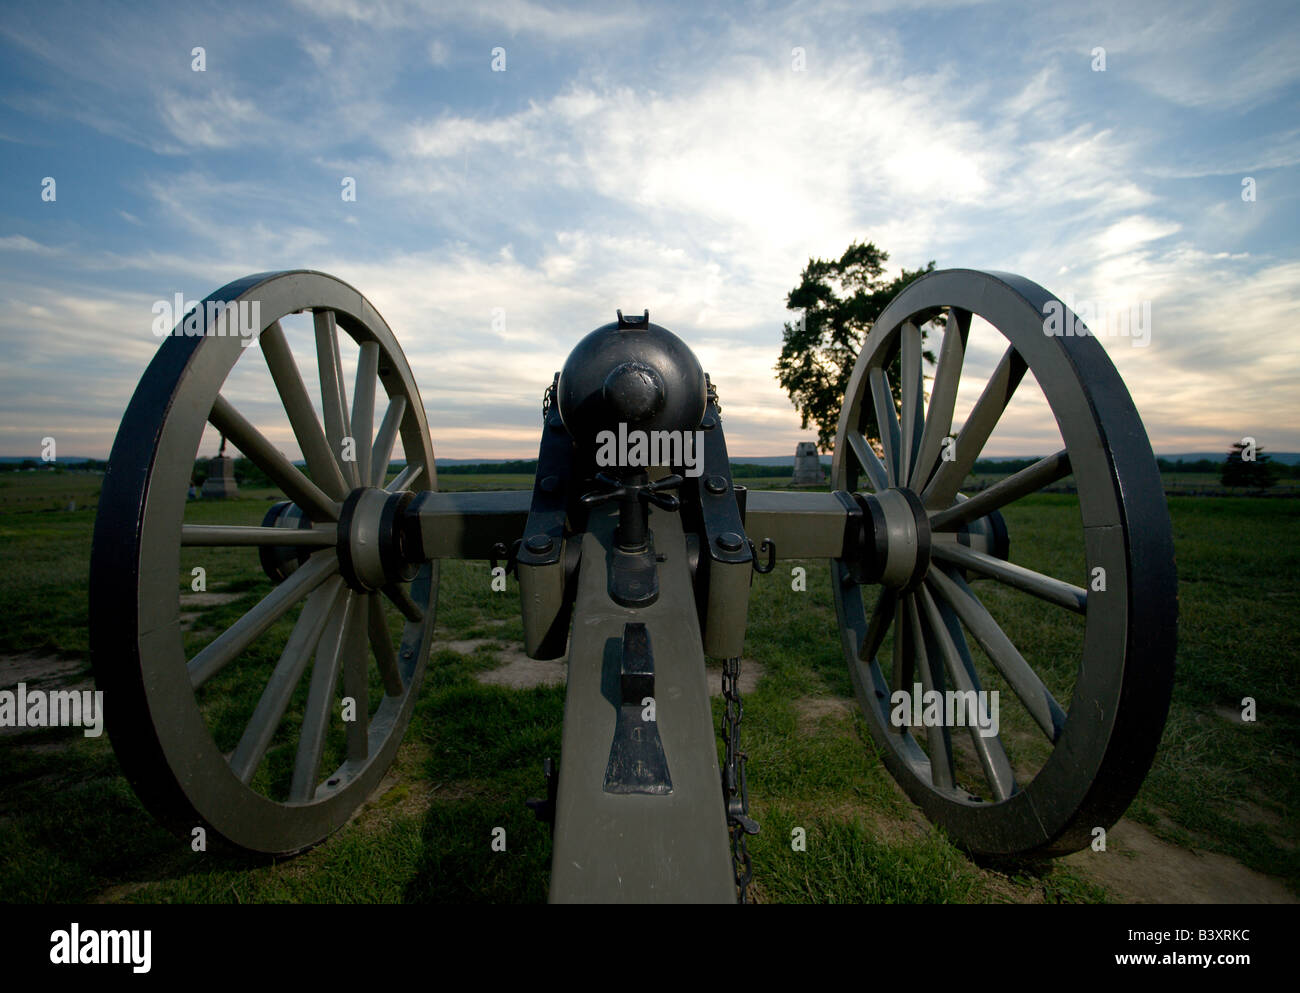 Cannon in Gettysburg National Military Park on May 25, 2008 in Gettysburg, PA. - Stock Image